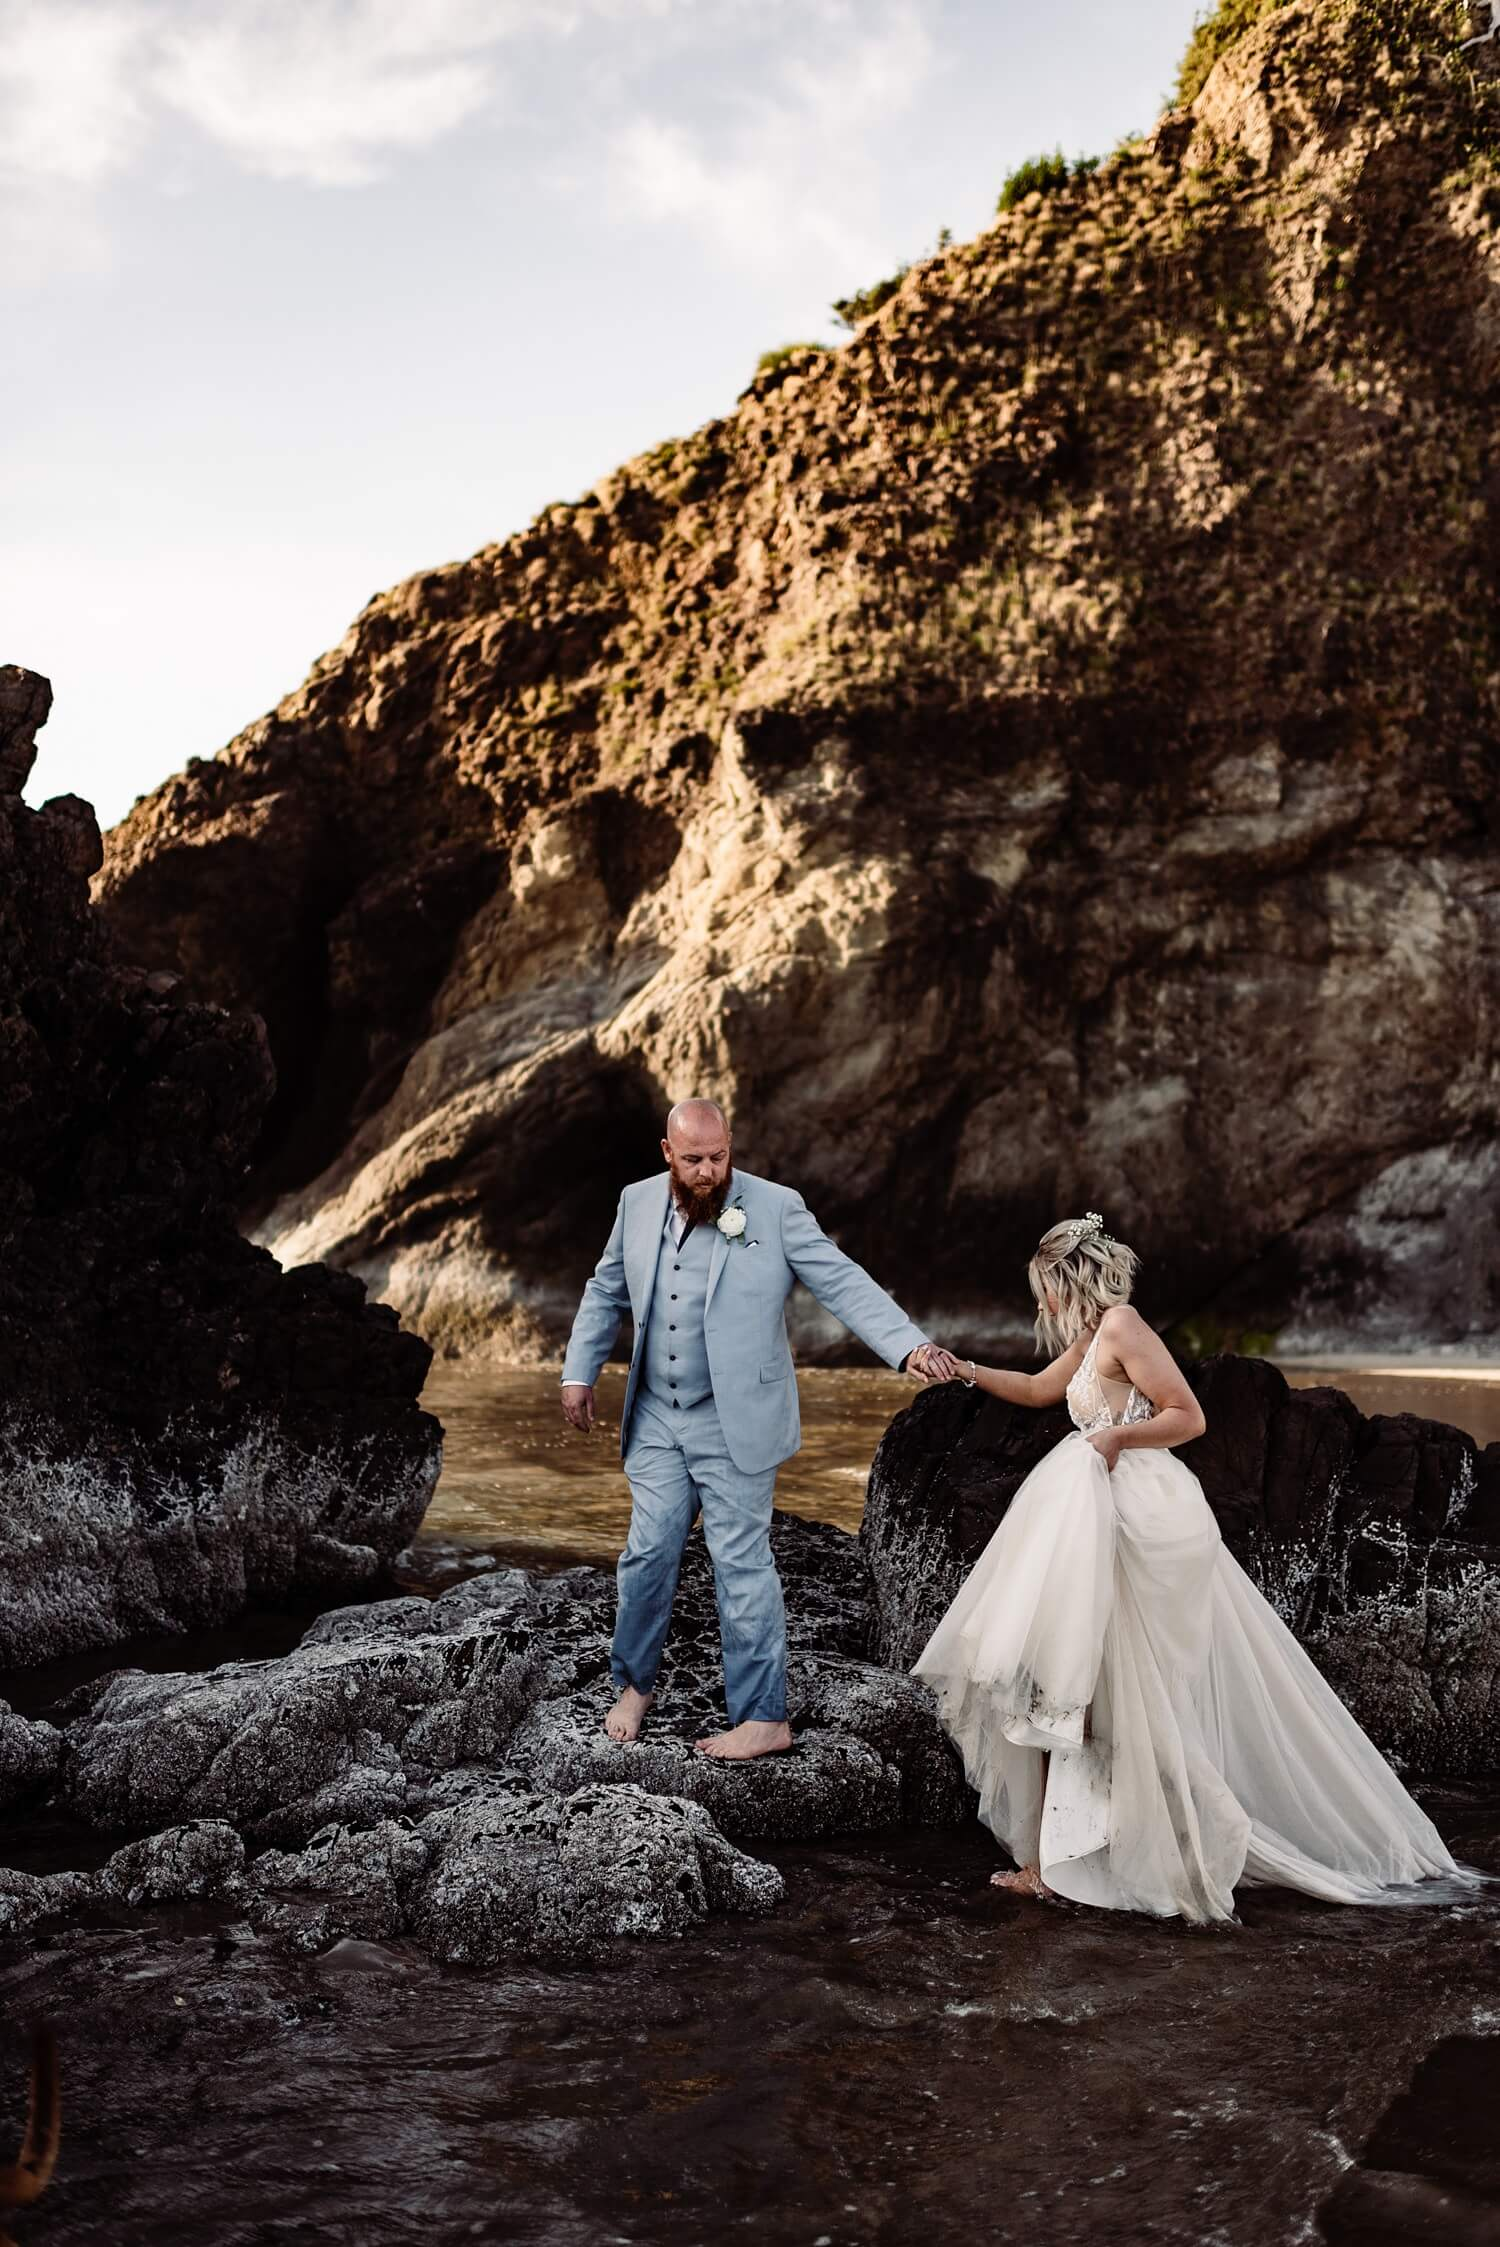 adventure elopement photographer,arcadia beach,avenue of the giants,boho bride,california,cannon beach,elope,elopement,intimate wedding,jedediah smith,national park,norcal,north coast,oregon coast,oregon wedding,pampas grass,prairie creek,redwoods,sam starns photography,small wedding,state park,triangle arch,wedding,